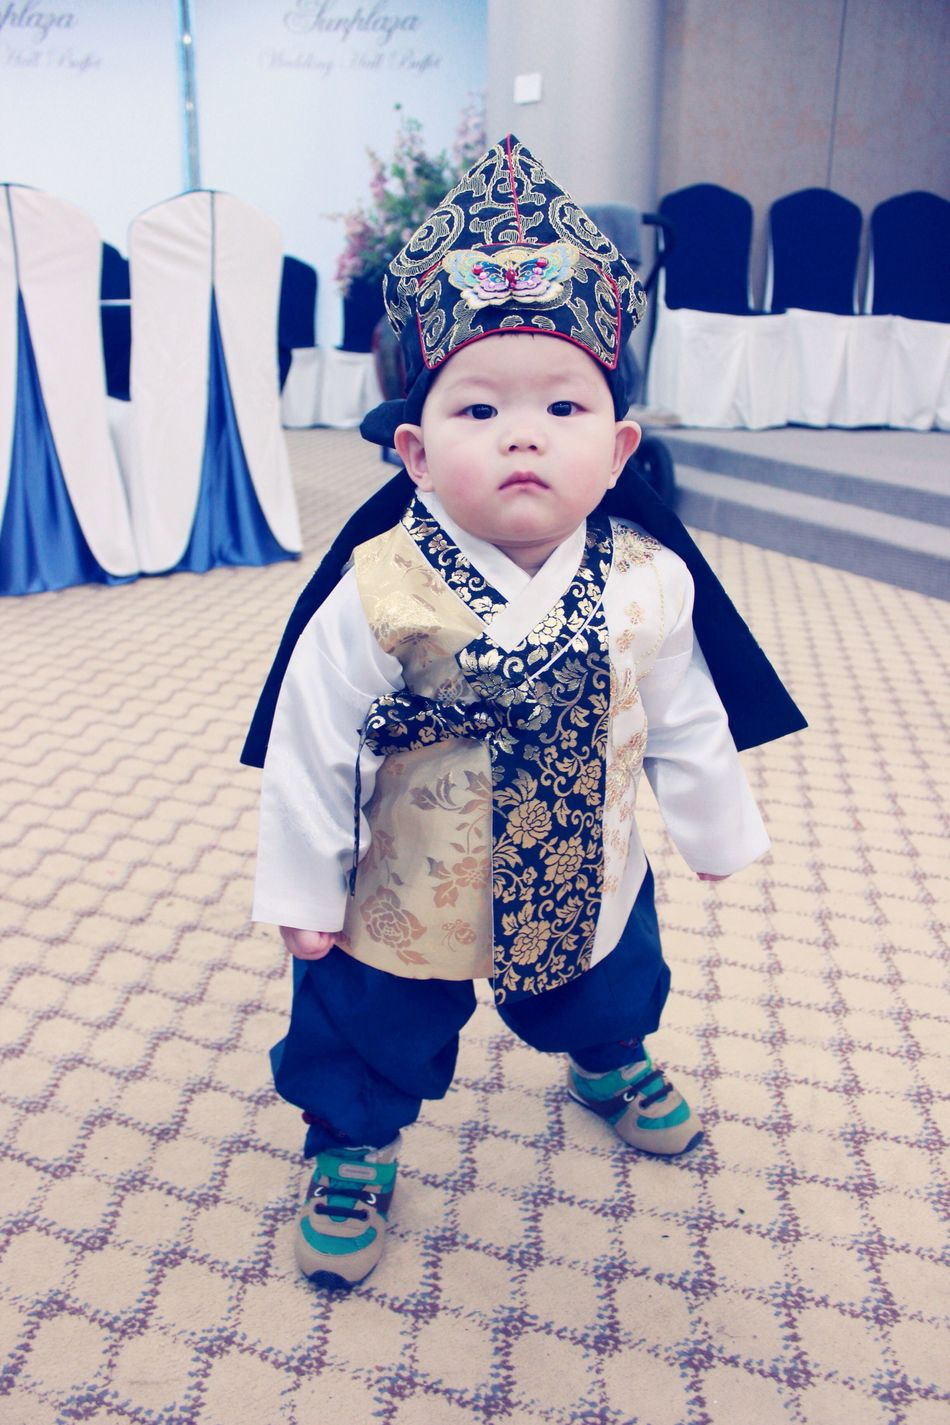 My Nephew Name Is Noah Happy First Birthday! Korean Hanbok Baby Boy Canon600D Canon Photography South Korea